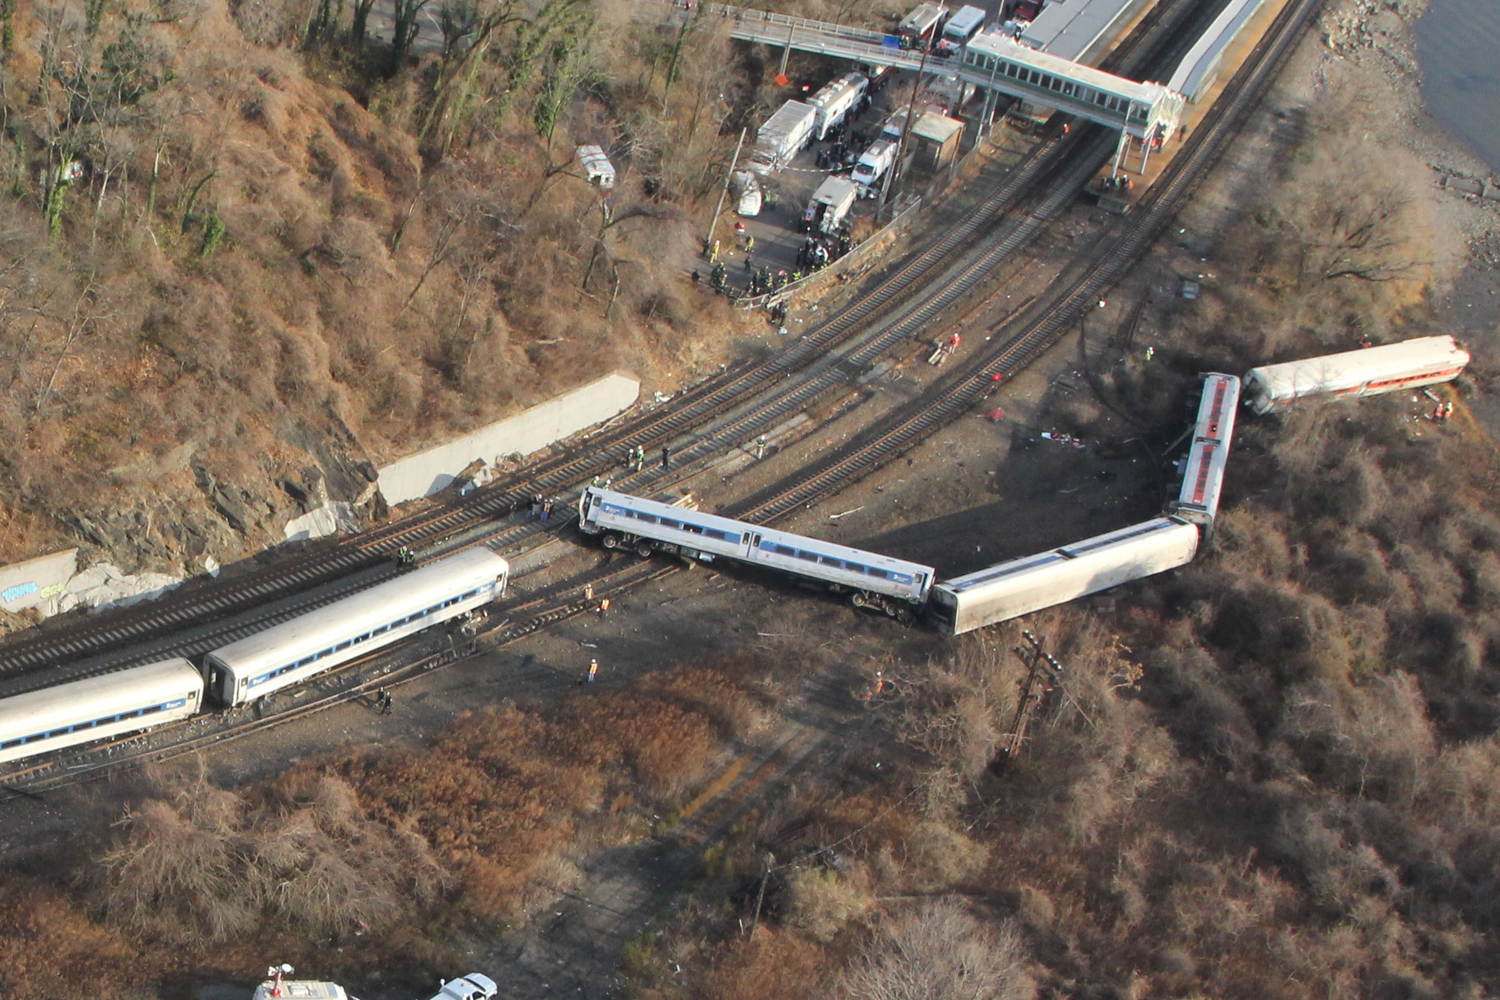 Dec. 1, 2013. In this handout photo provided by the National Transportation Safety Board (NTSB), a Metro North train sits derailed  in the Bronx borough of New York City. Multiple injuries and four deaths were reported after the seven car train left the tracks as it was heading to Grand Central Terminal along the Hudson River line.  (Photo by NTSB via Getty Images)